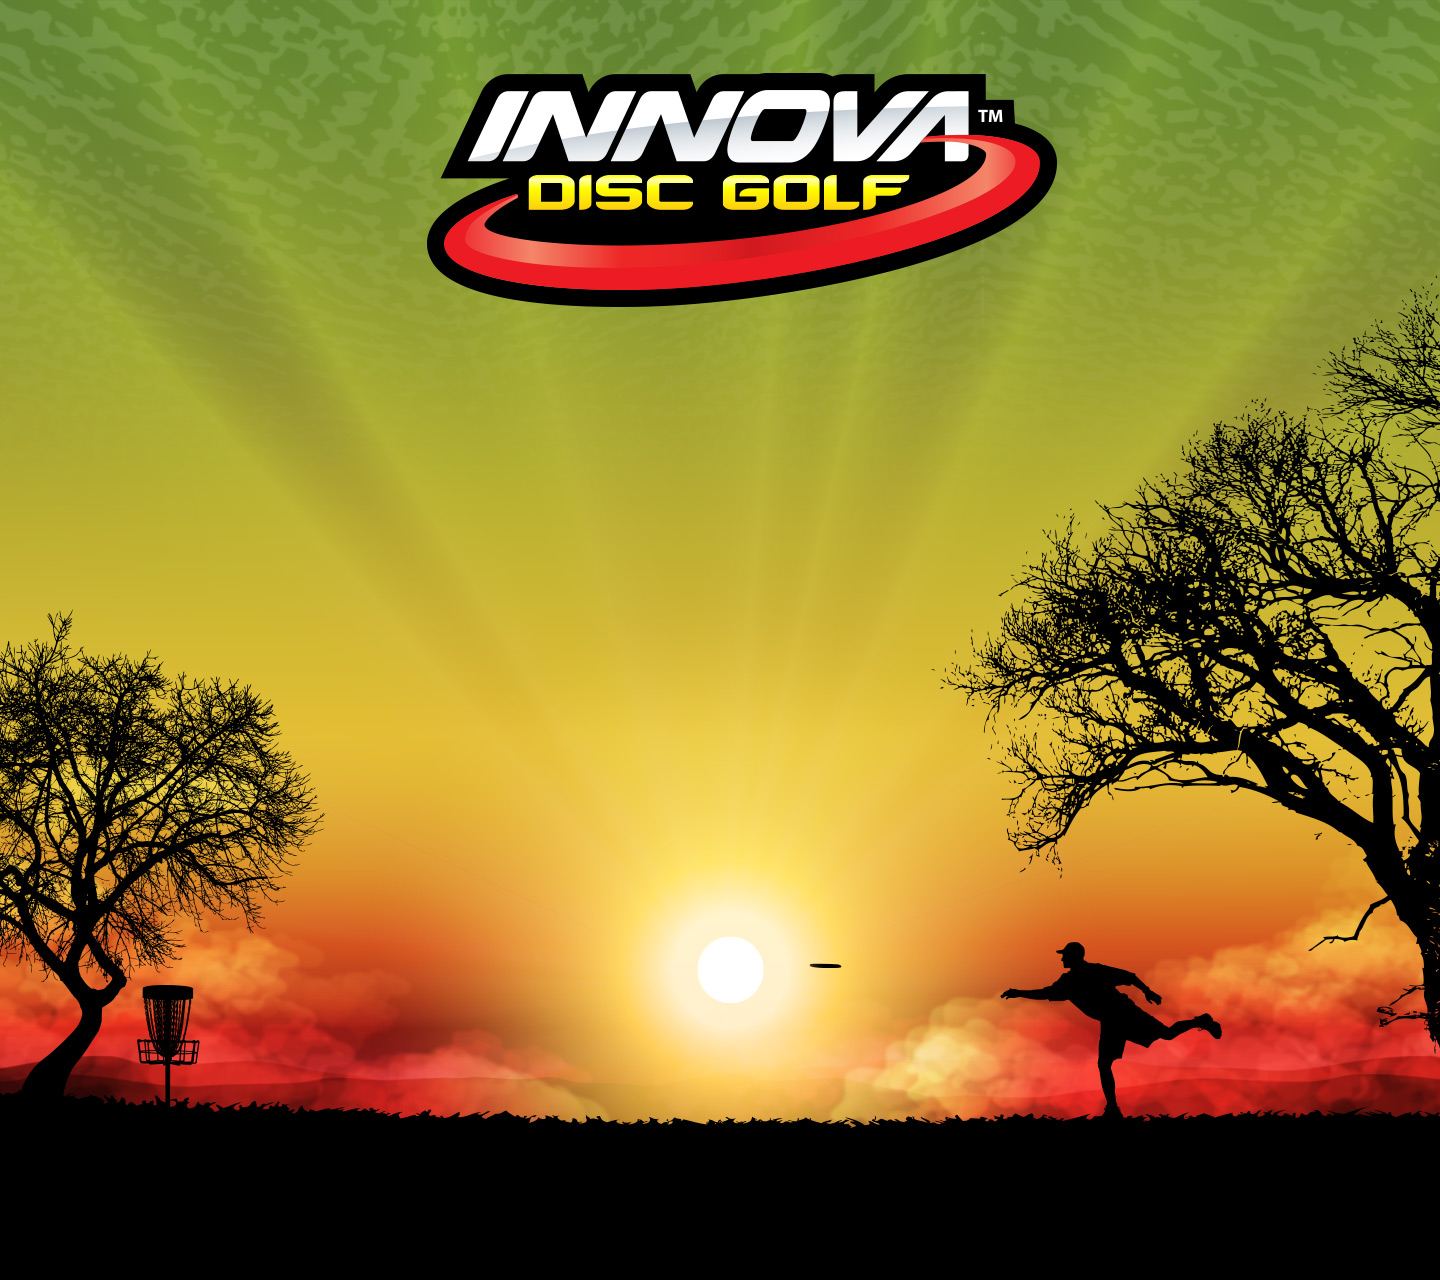 Disc Golf Wallpaper